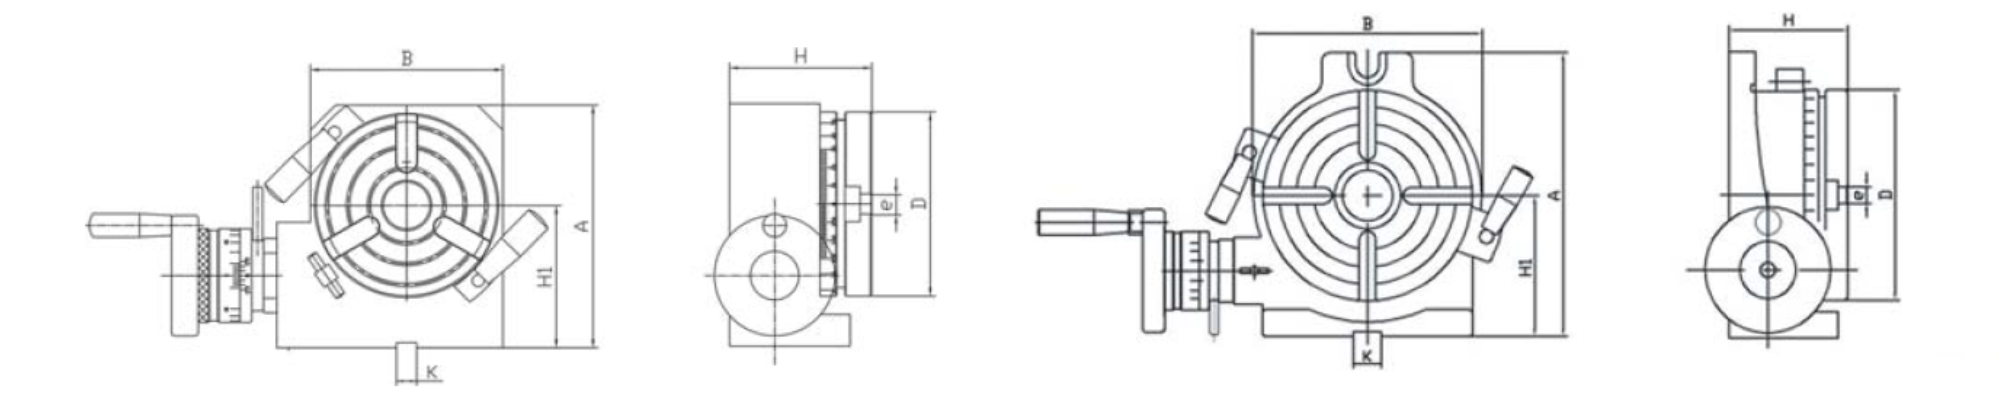 Diagram of HORIZONTAL/VERTICAL PRECISION ROTARY TABLE